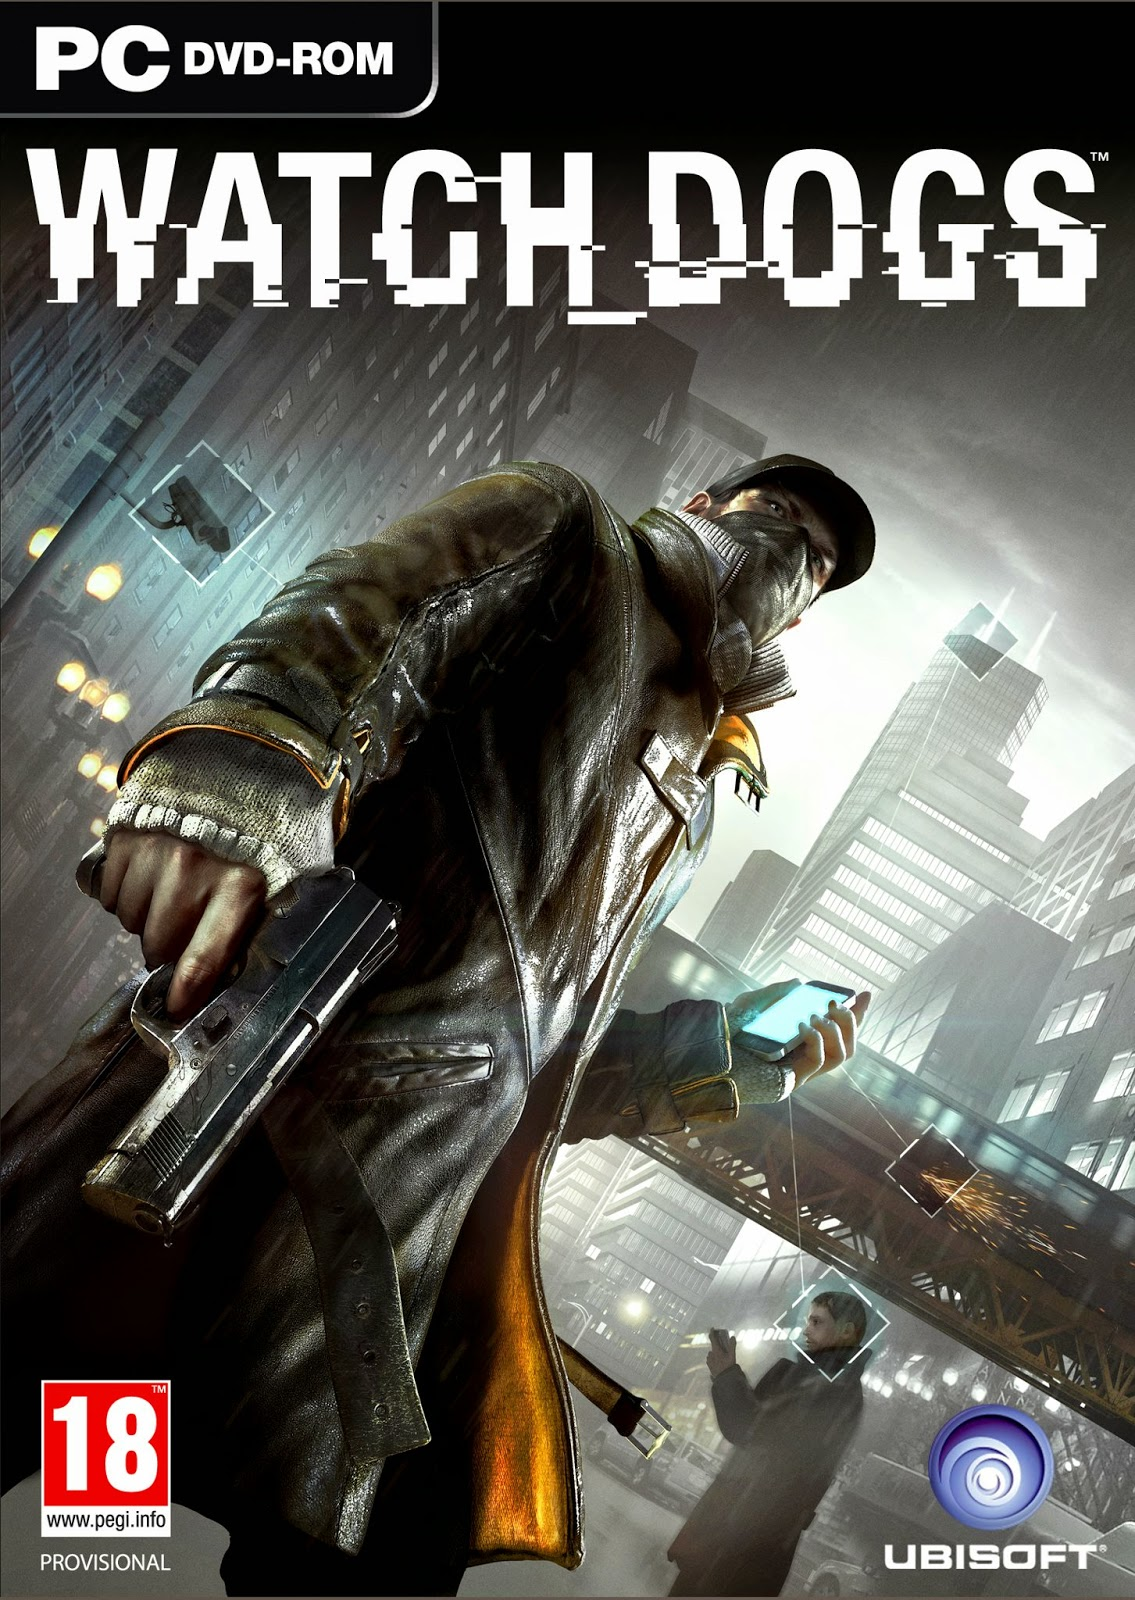 watch dogs box art pc - Watch Dogs PC